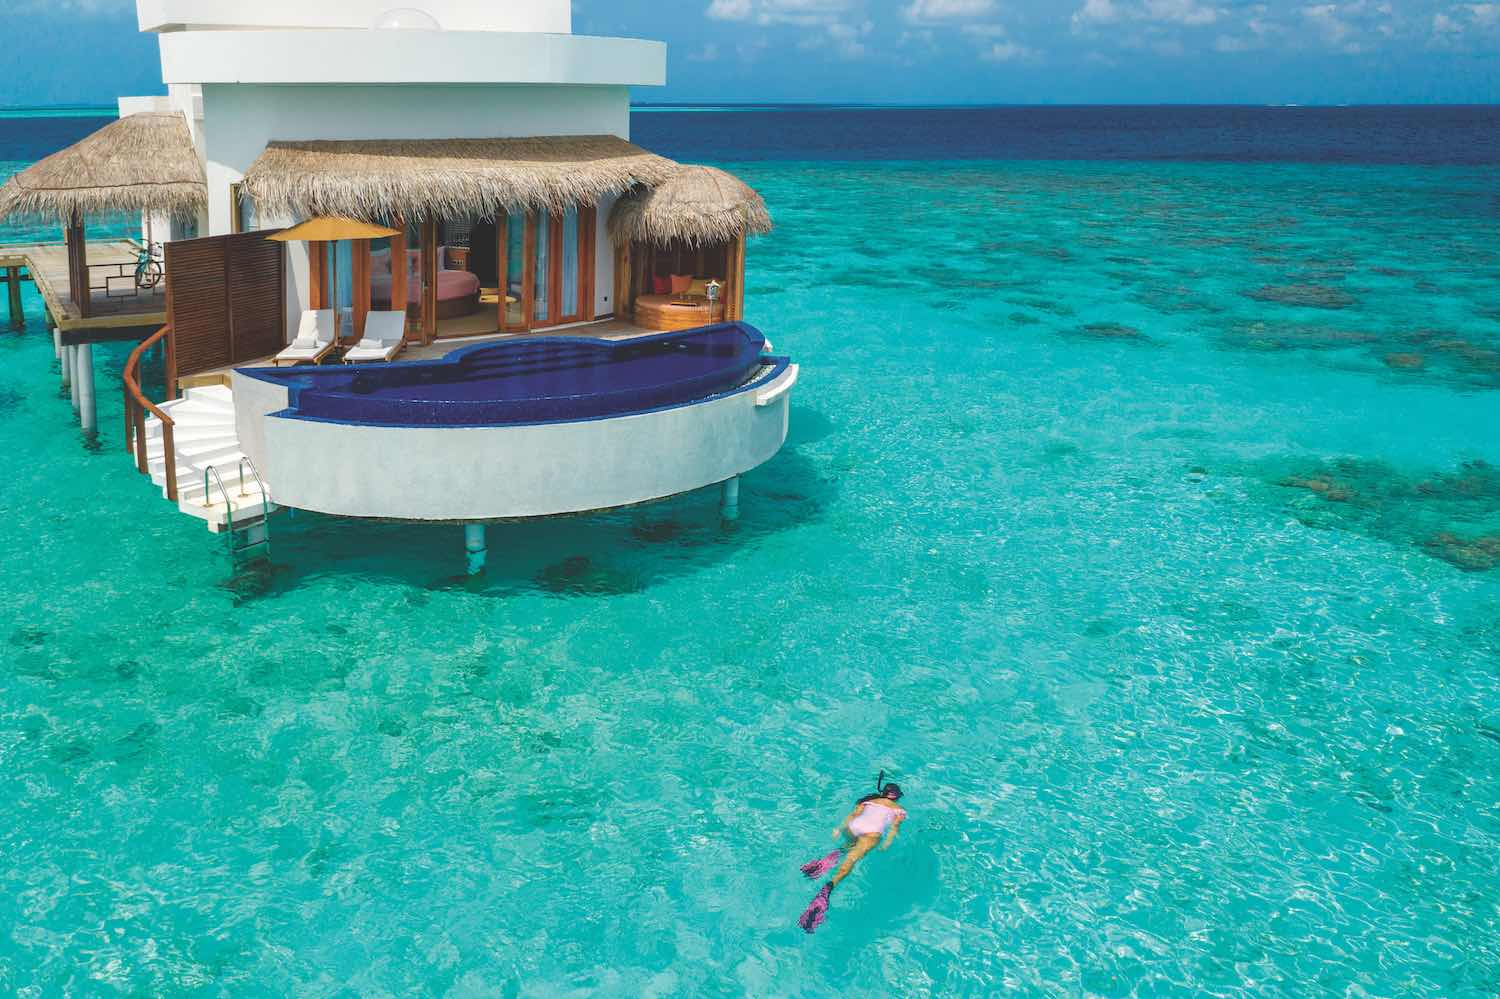 maldives-oblu-select-at-sangeli-honeymoon-water-suite-with-pool-5-holiday-honeymoon-vacation-invite-to-paradise.jpg